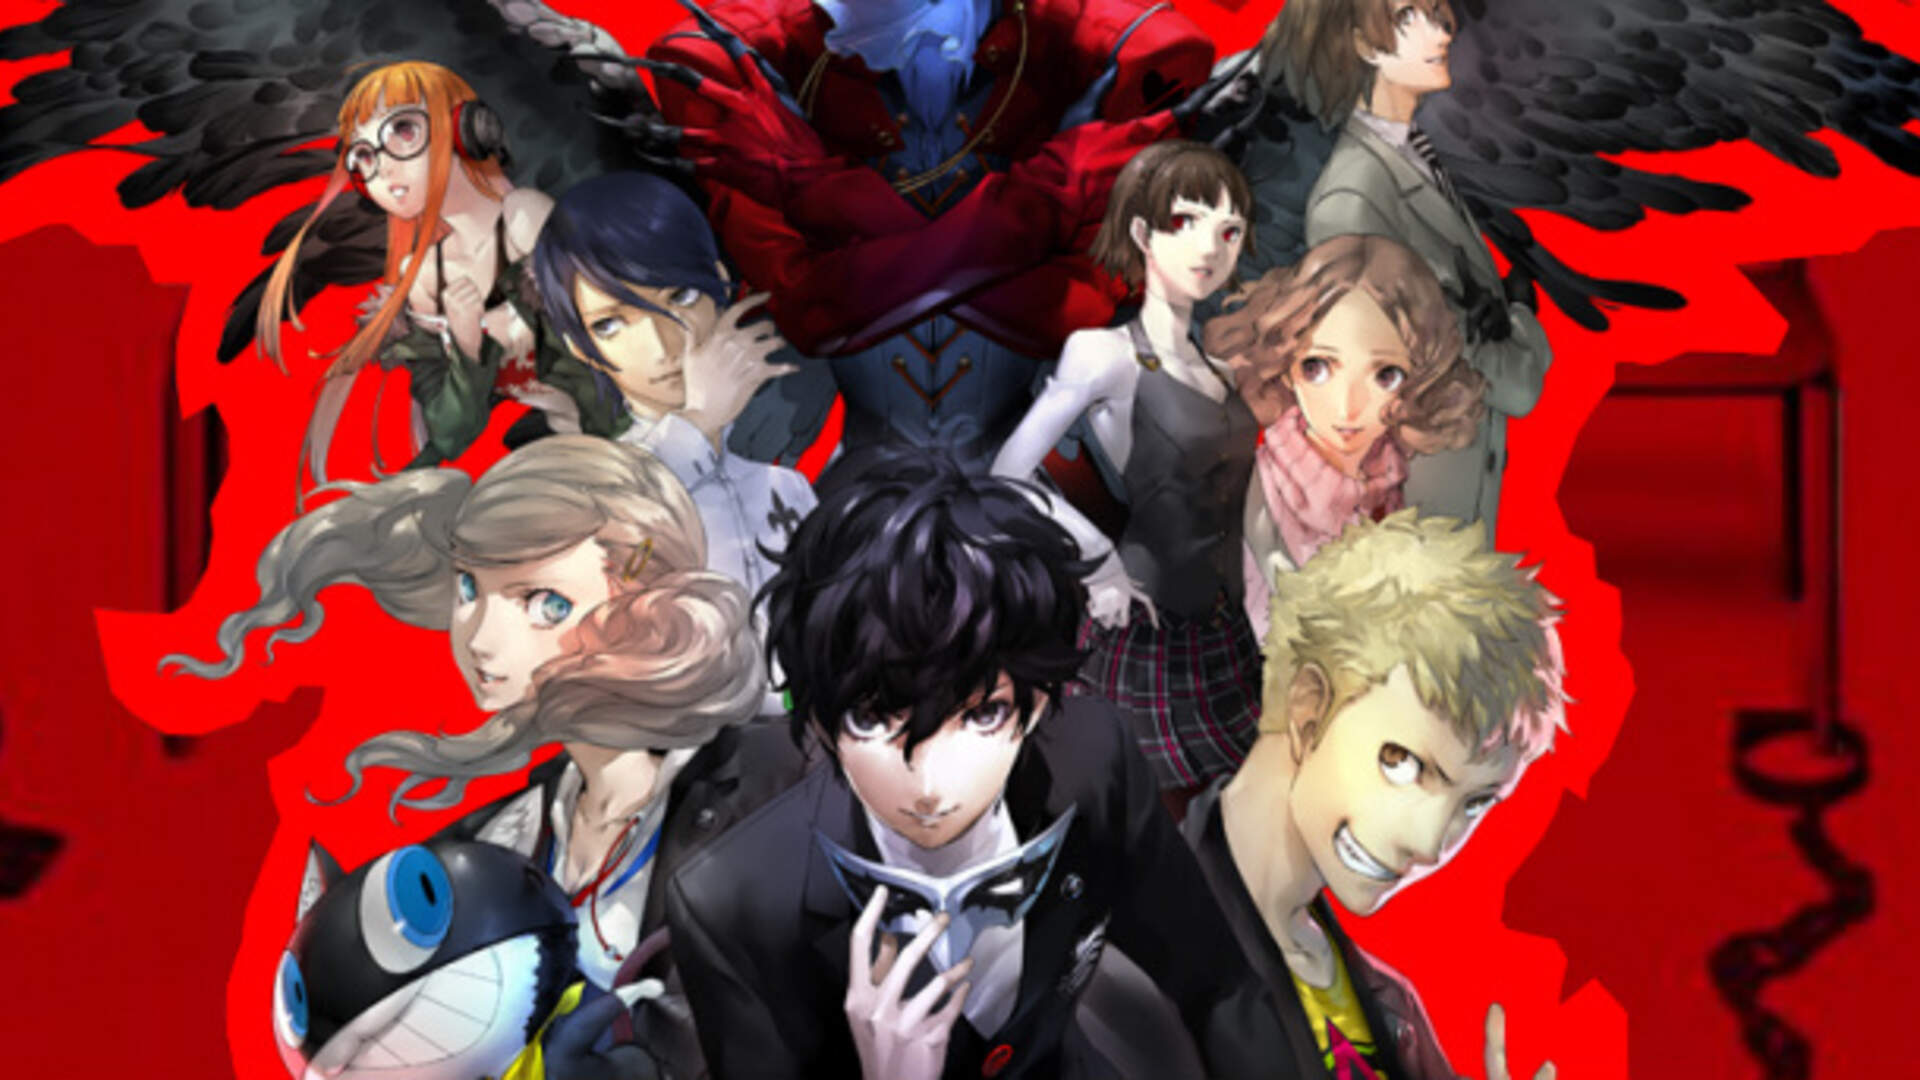 Persona 5 Has Ties to Literary History